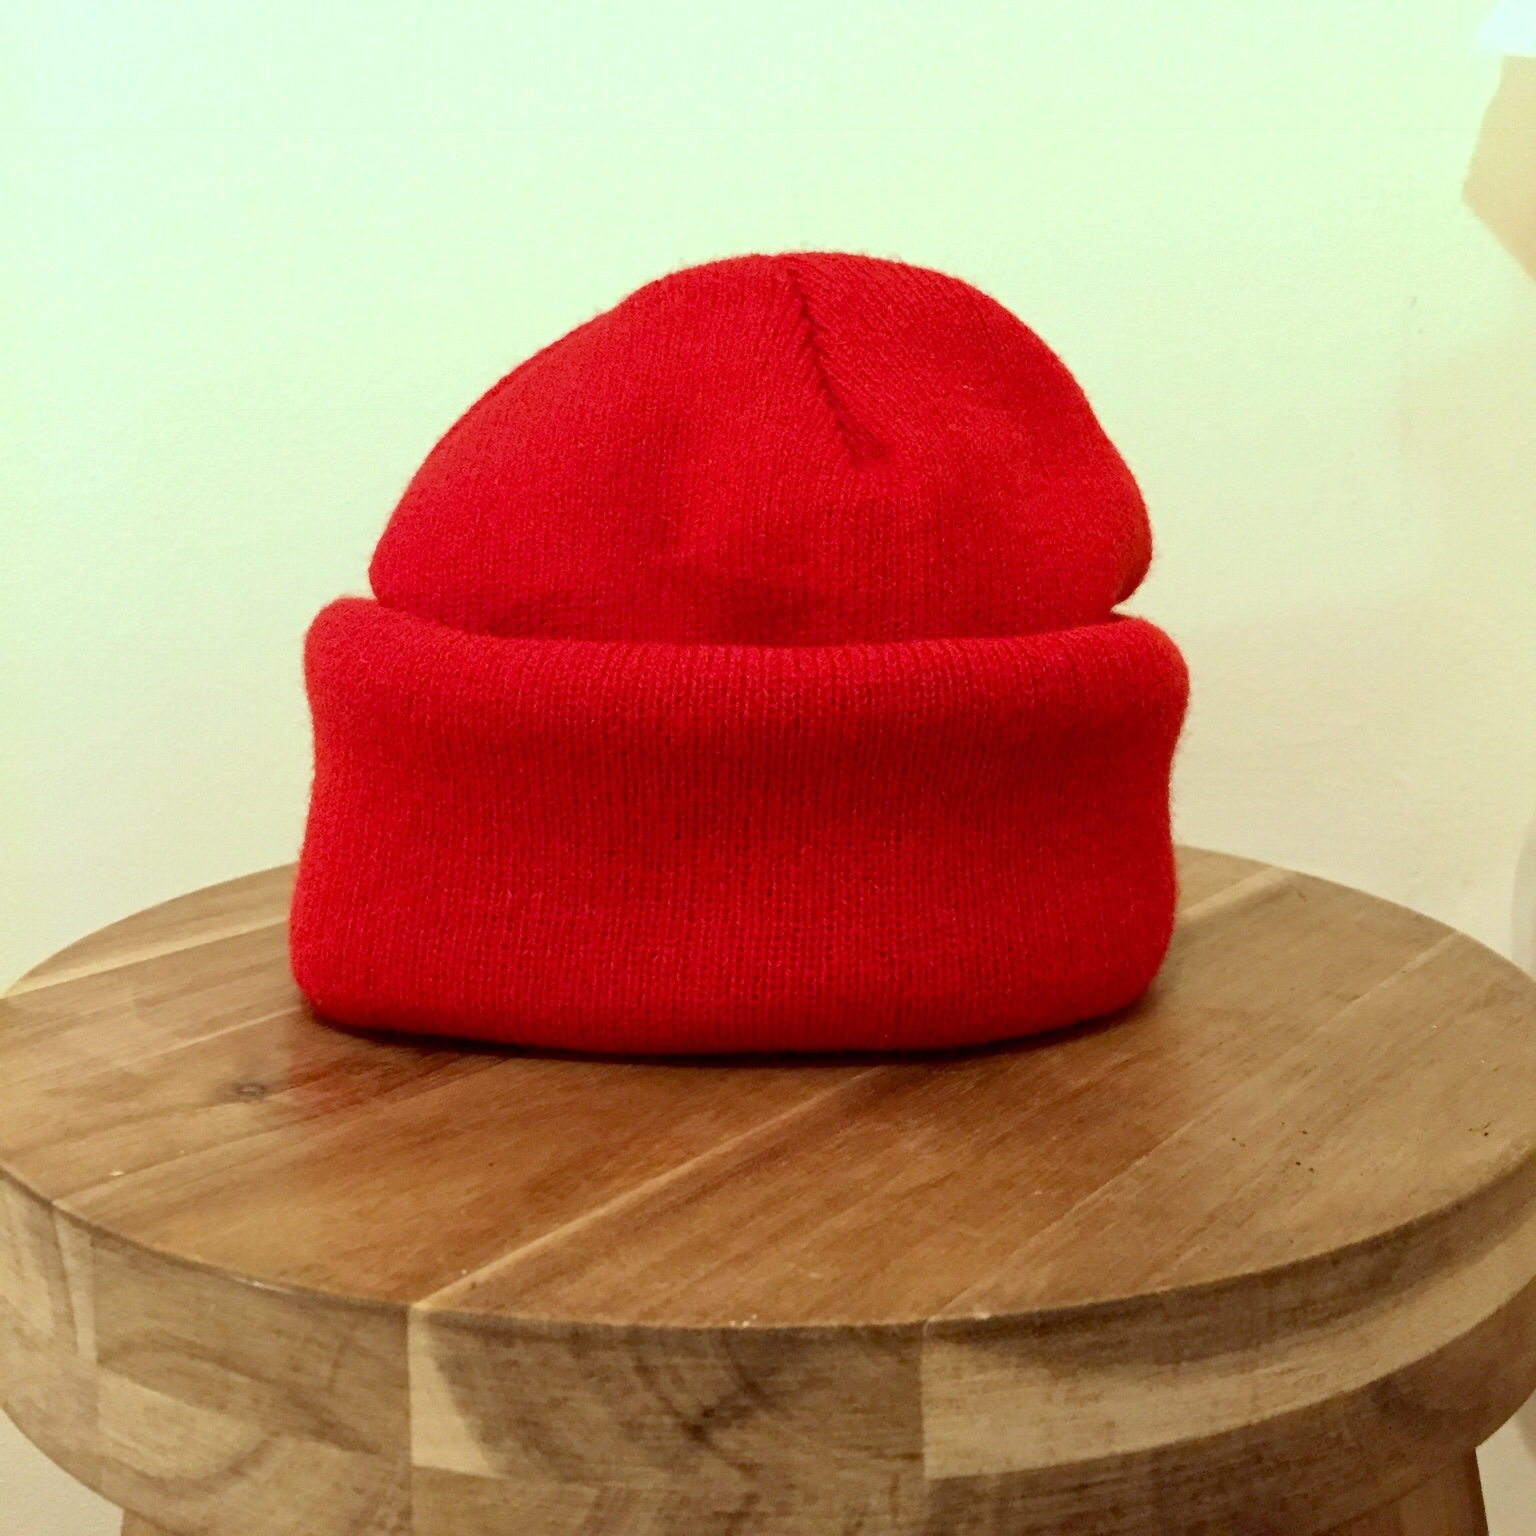 8e11388a1 Plain red fisherman beanie. In the style of The... - Depop